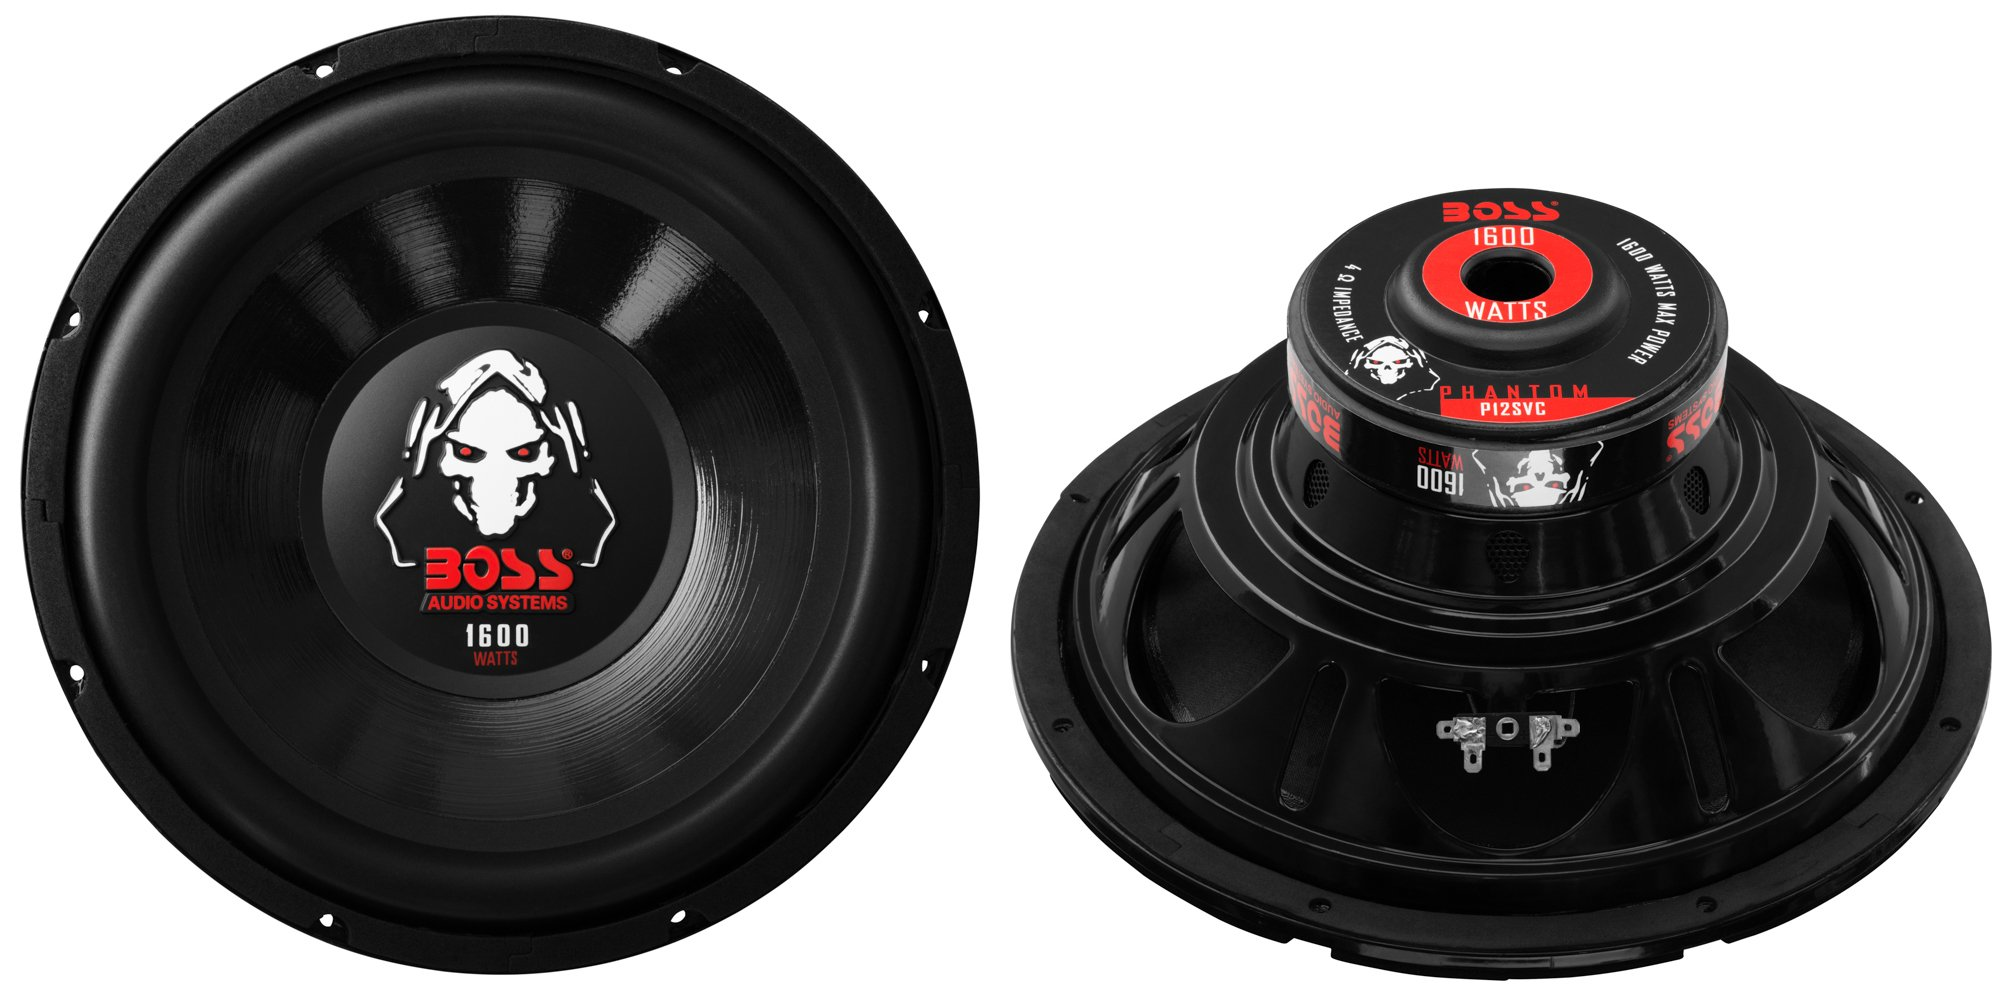 2) Boss P12SVC 12'' 3200W Car Audio Power Subwoofer Sub Woofer Stereo SVC 4 Ohm